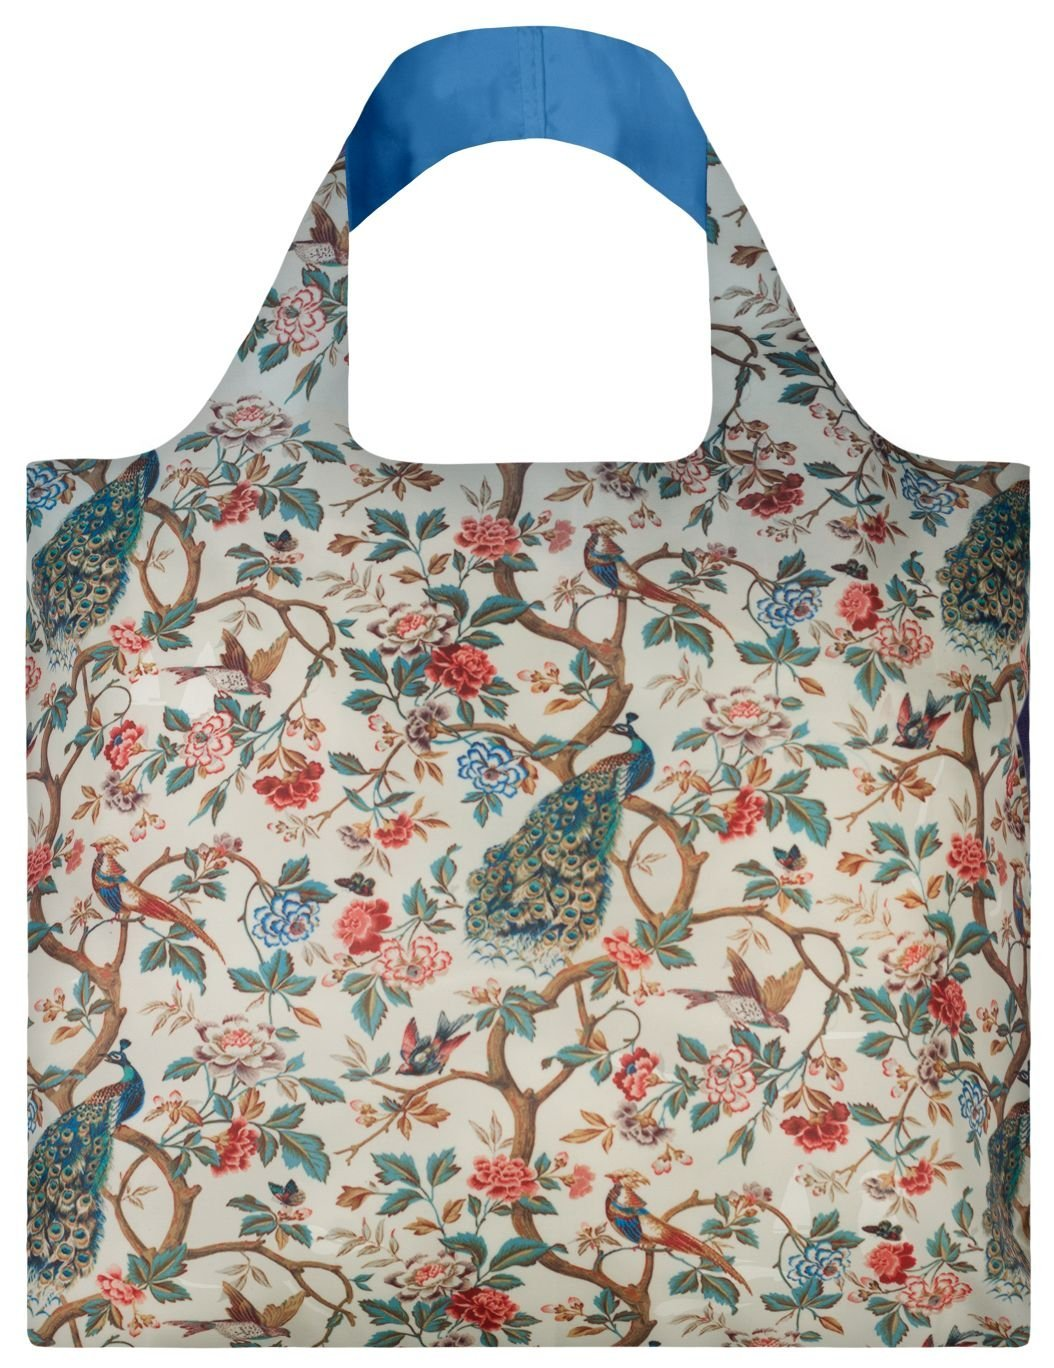 LOQI Reusable Tote Bag, Peacock with Peonies, Multi-Colored Print, International Carry-on WH.PP